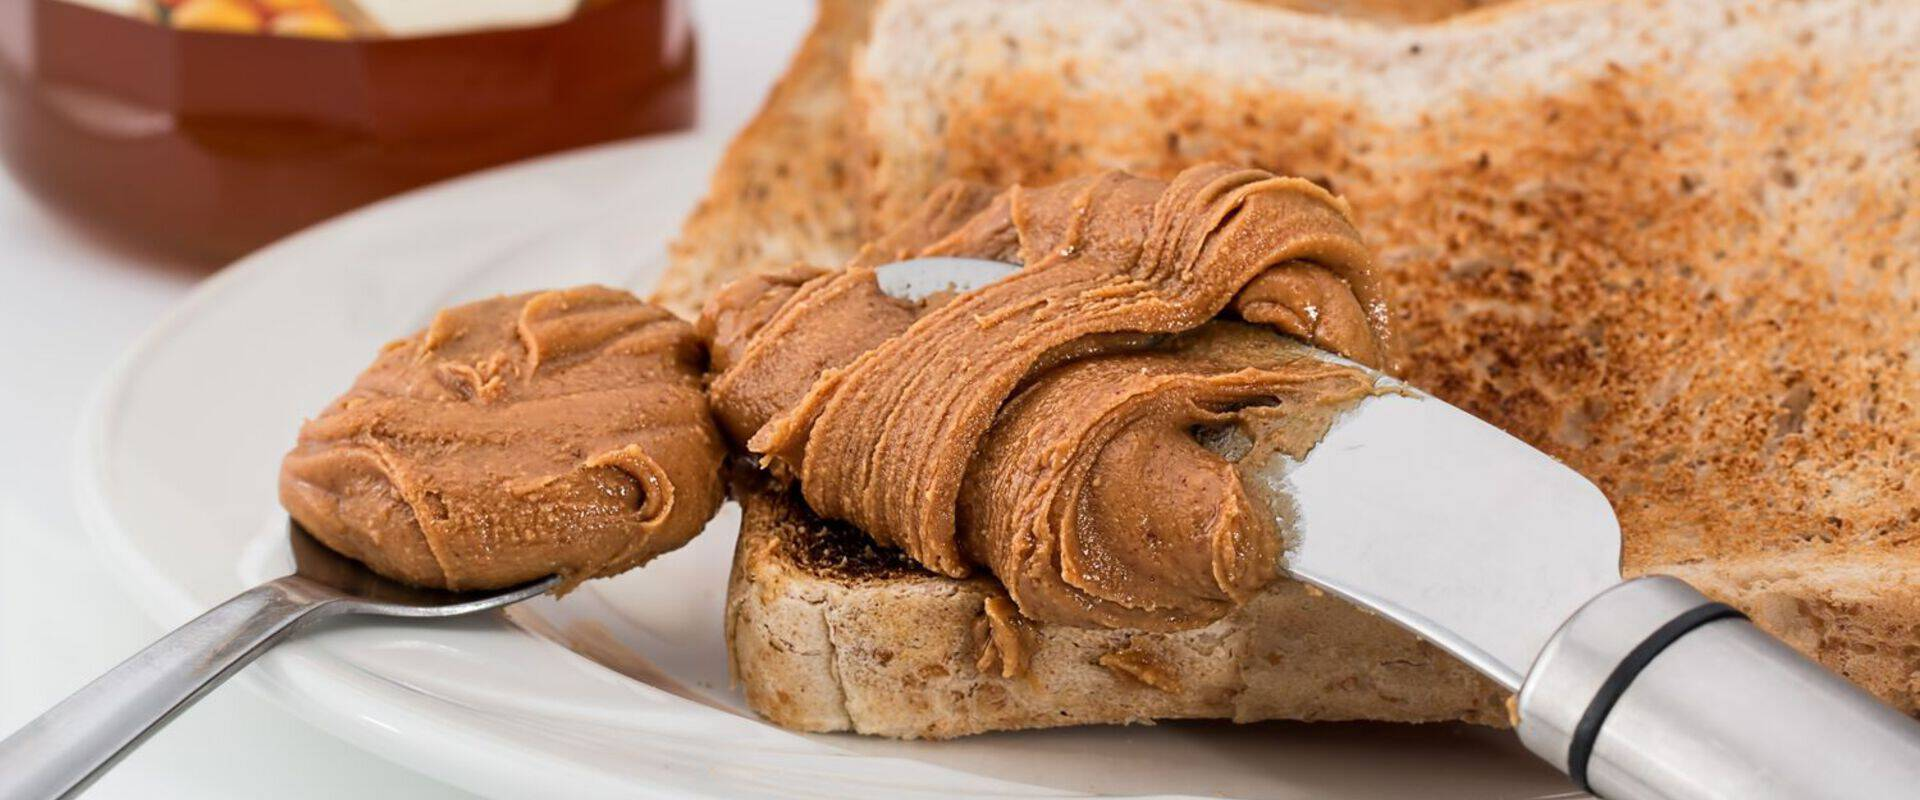 How a Tablespoon of Peanut Butter Could End Up Costing a Massachusetts Restaurant Millions